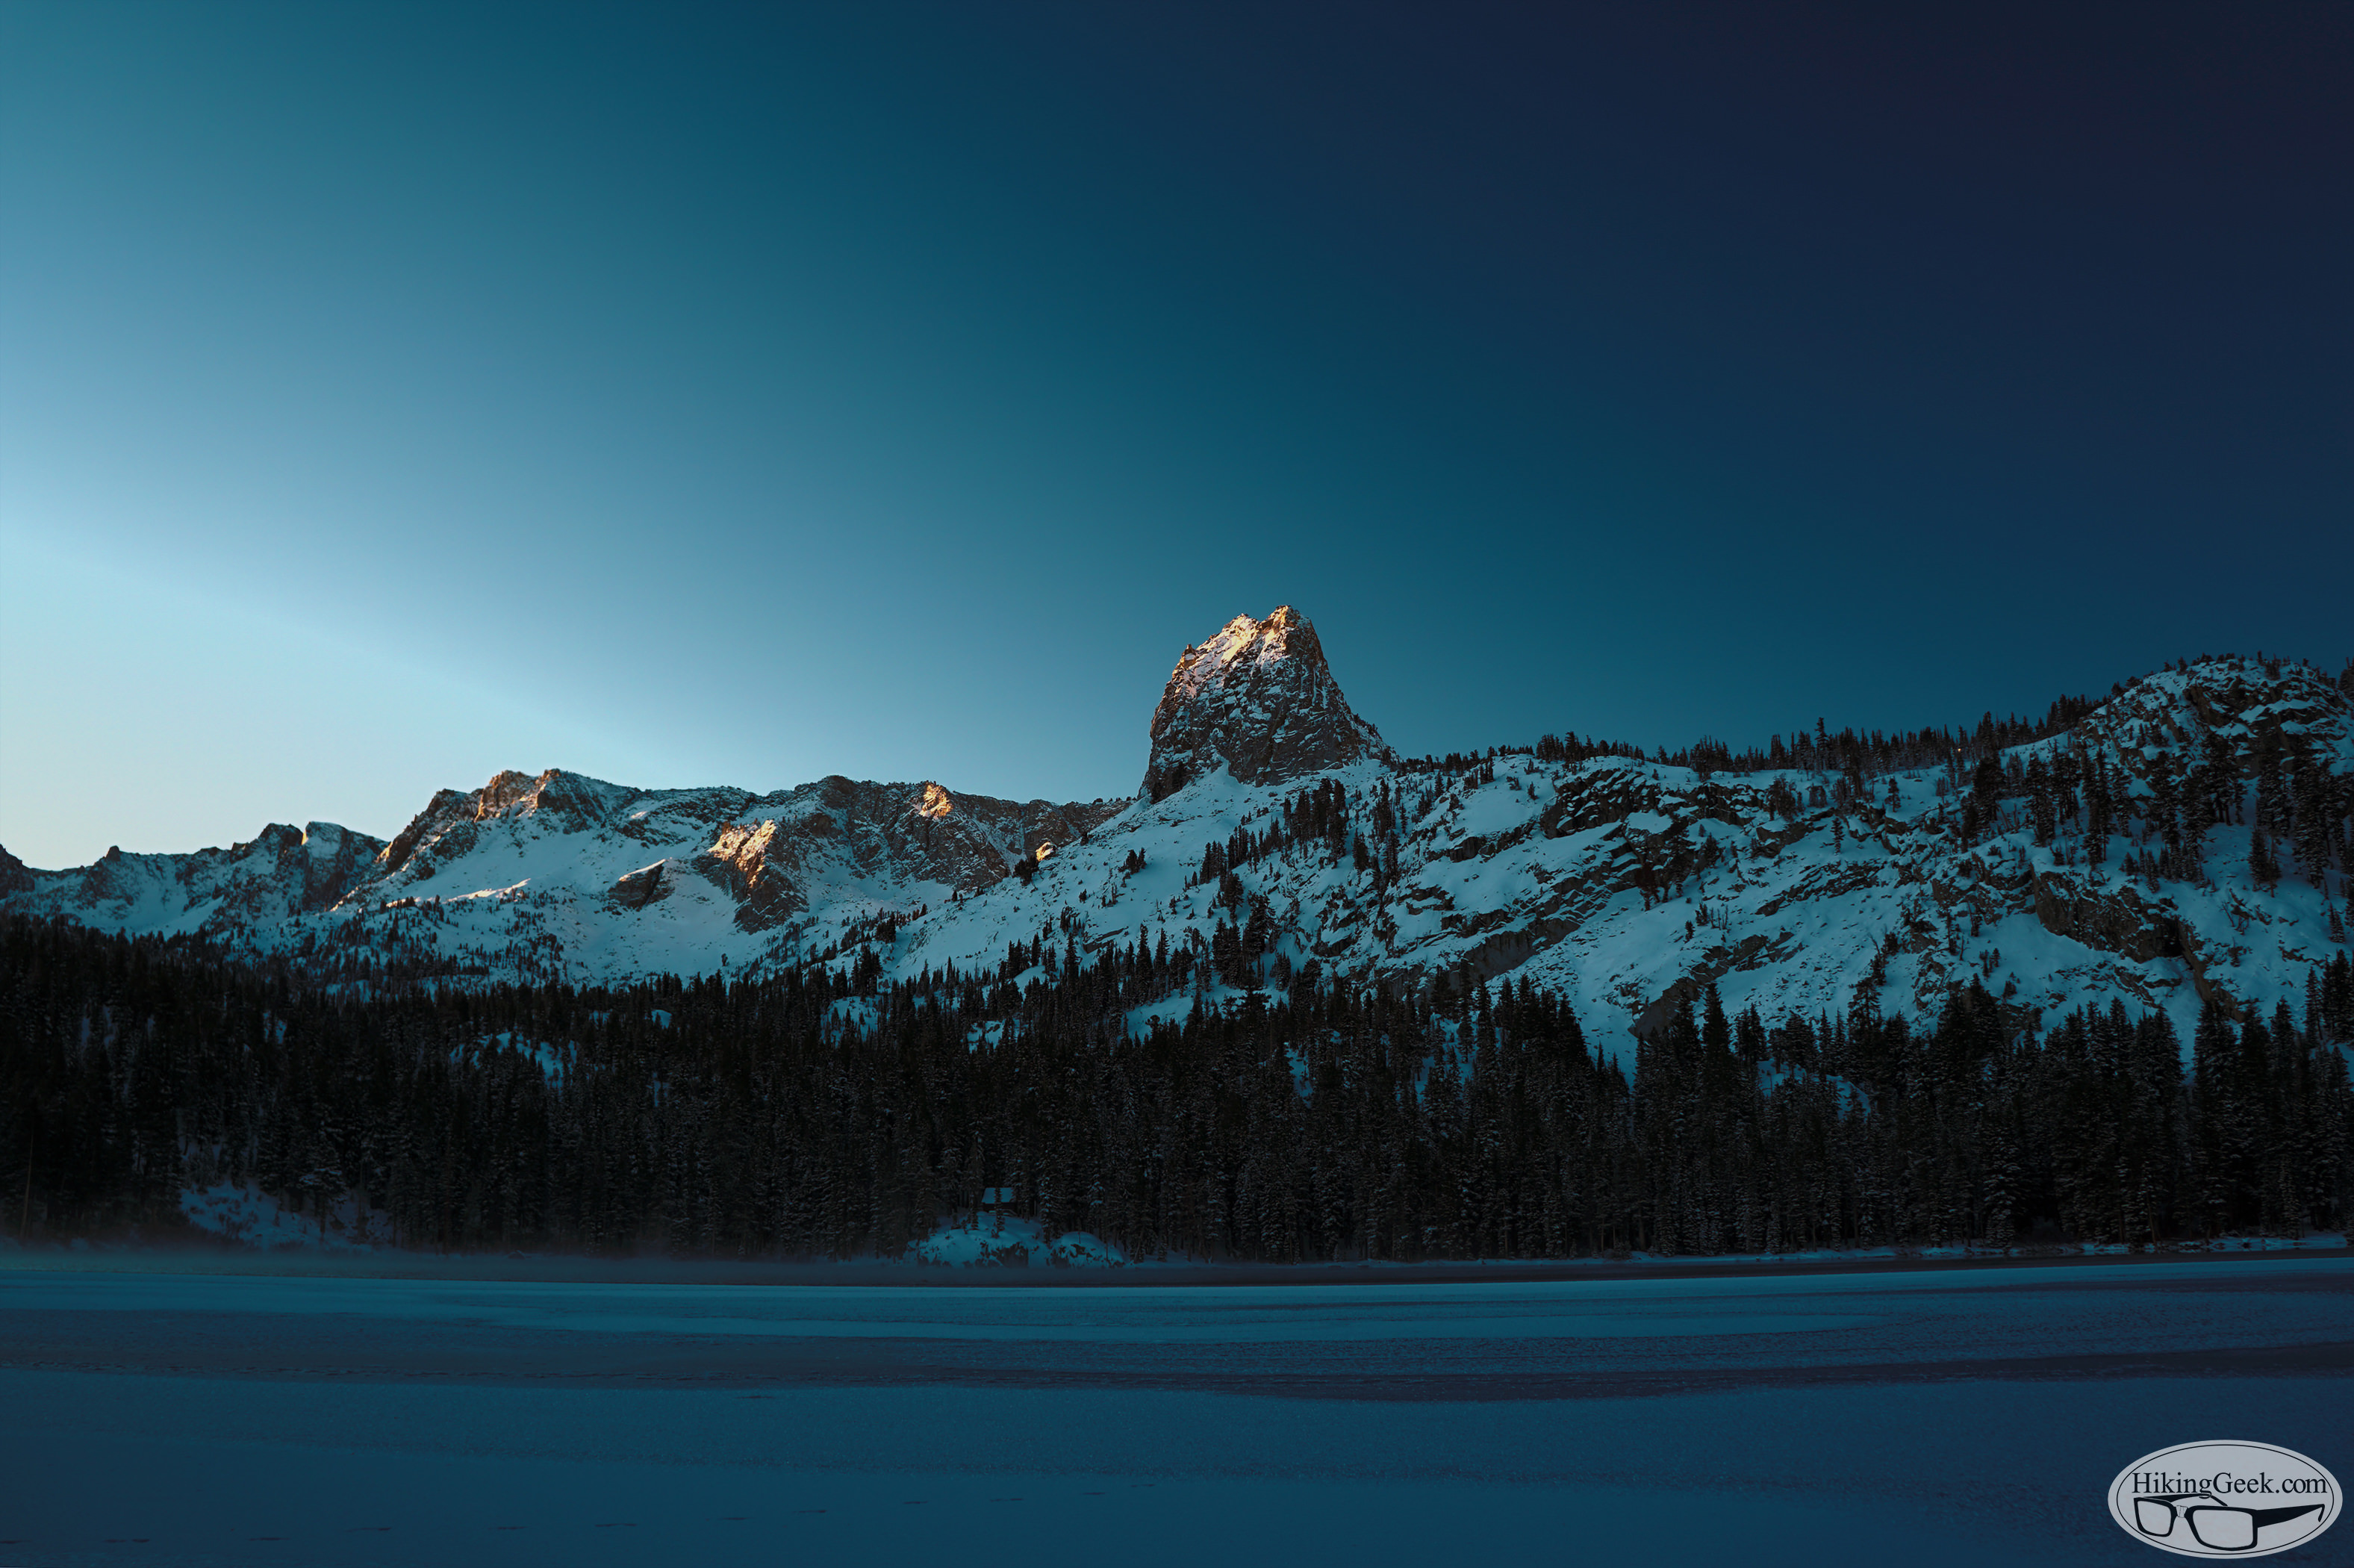 Trip Report: Mammoth Lakes Basin, November 29 2015